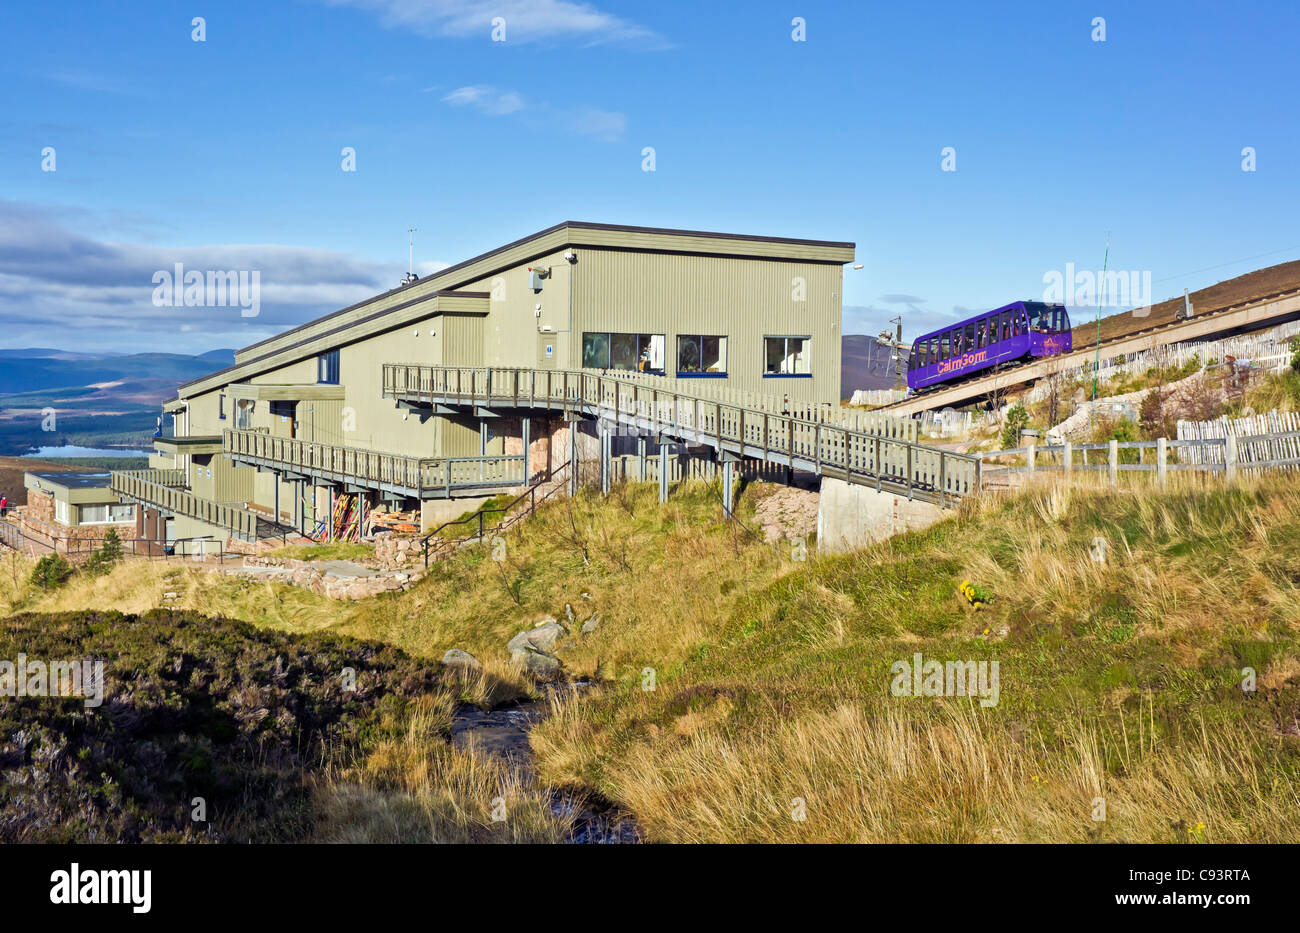 Cairngorm Mountain lower railway installation on Cairn Gorm in Cairngorms National Park Scotland with funicular car ascending Stock Photo